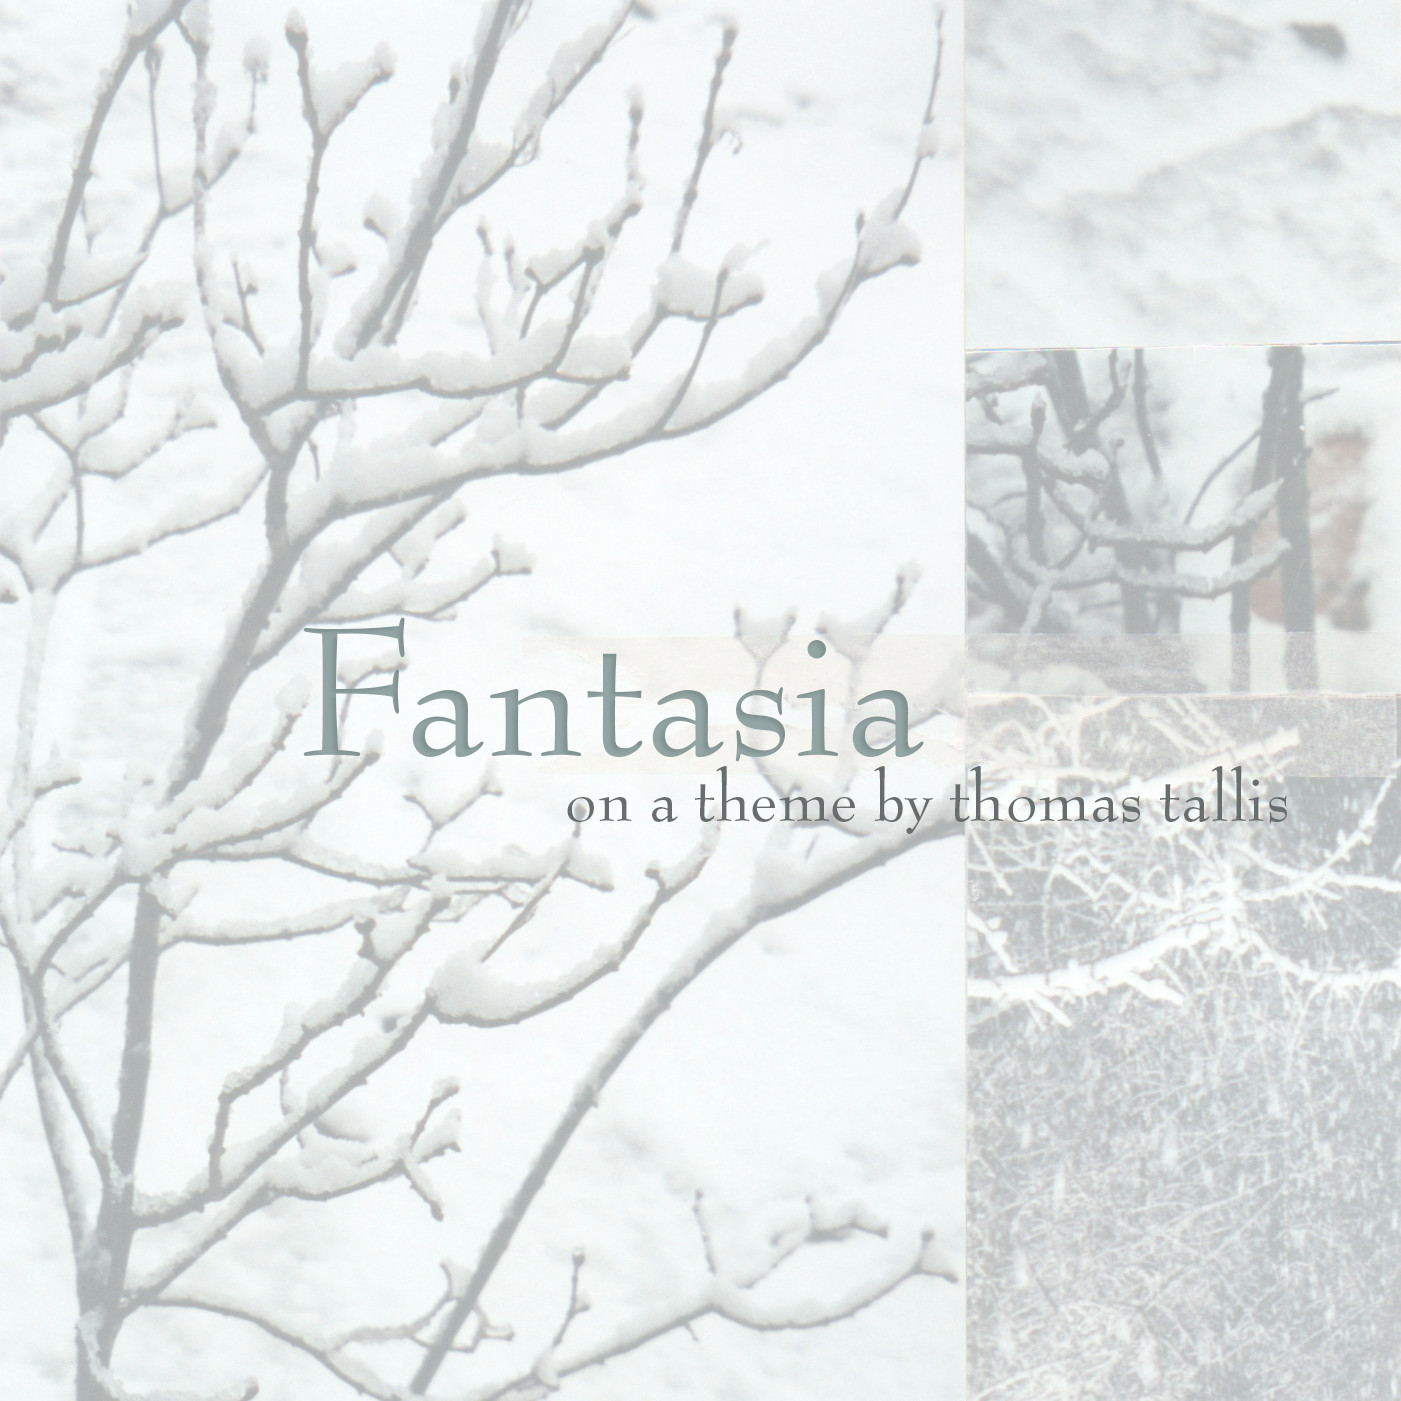 Fantasia on a Theme Website Tile.jpg